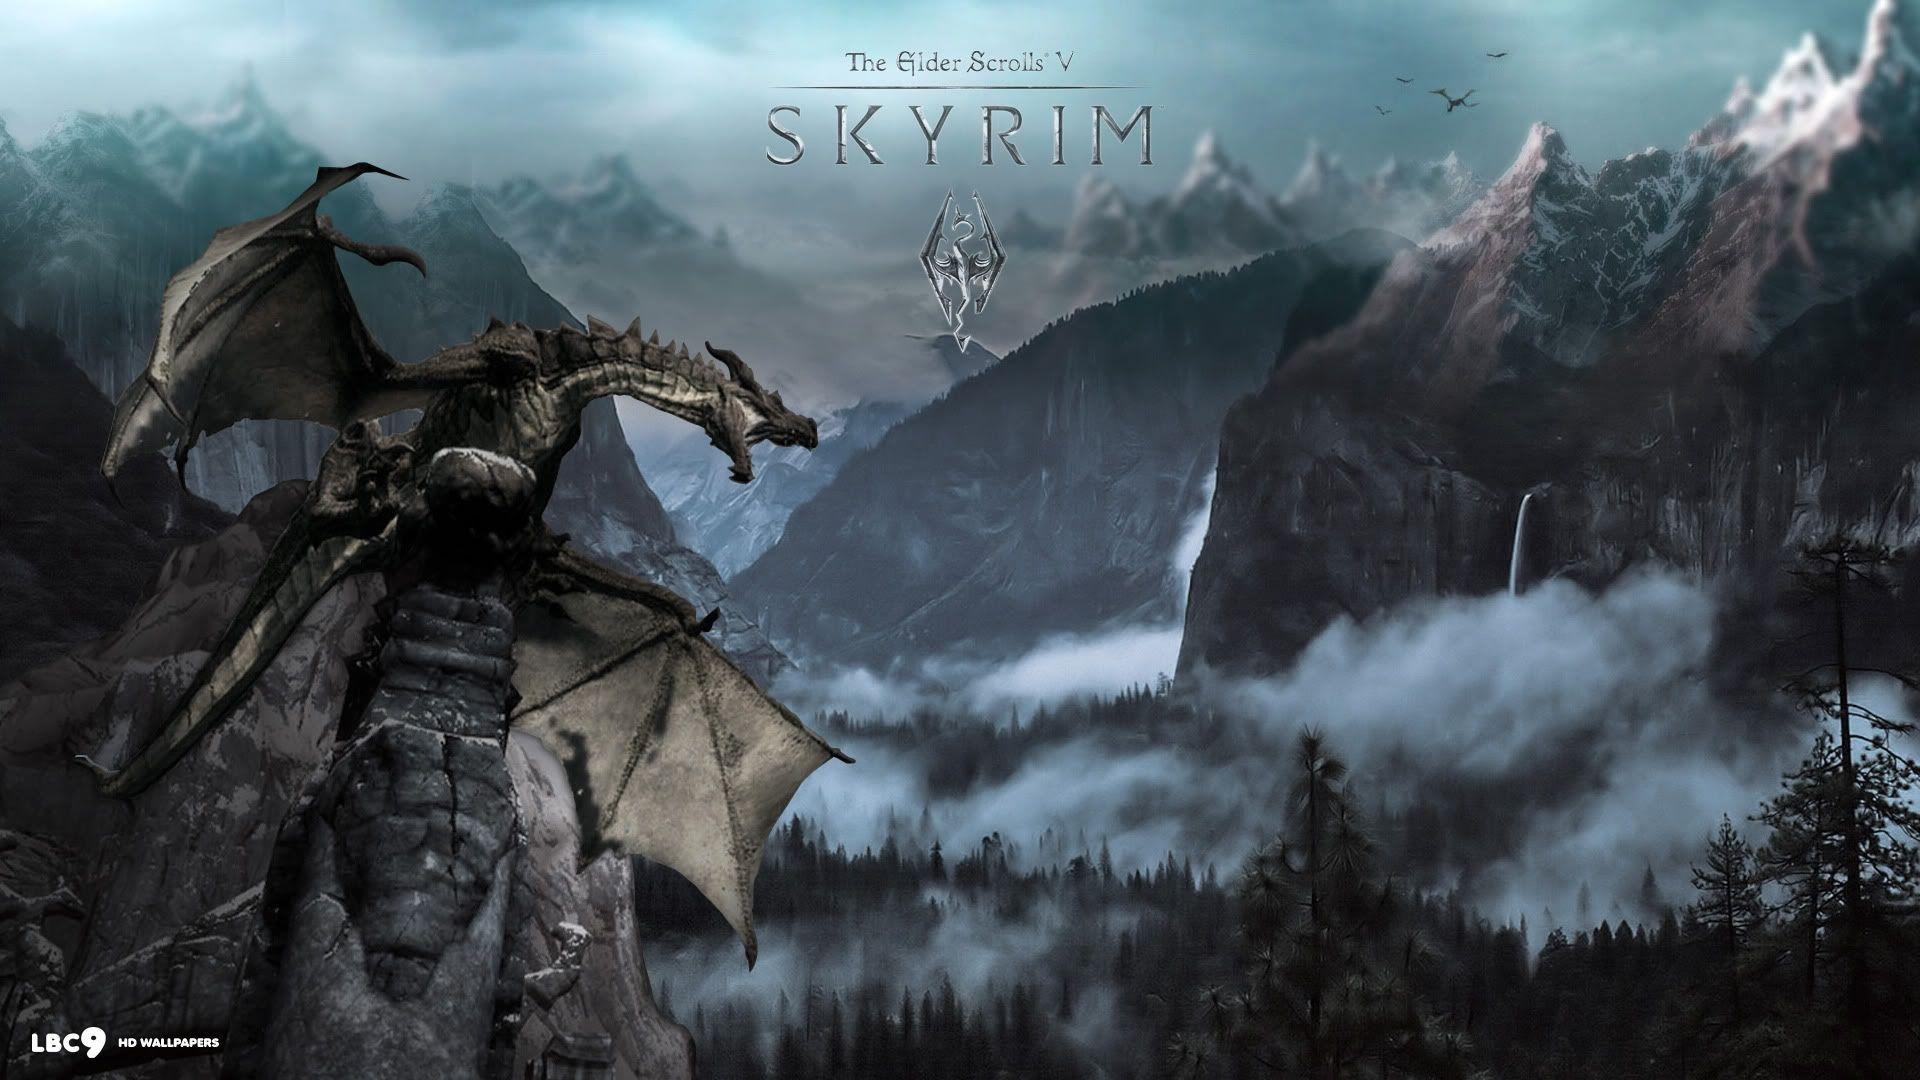 the elder scrolls v skyrim wallpaper 1/9 | role playing games hd ...